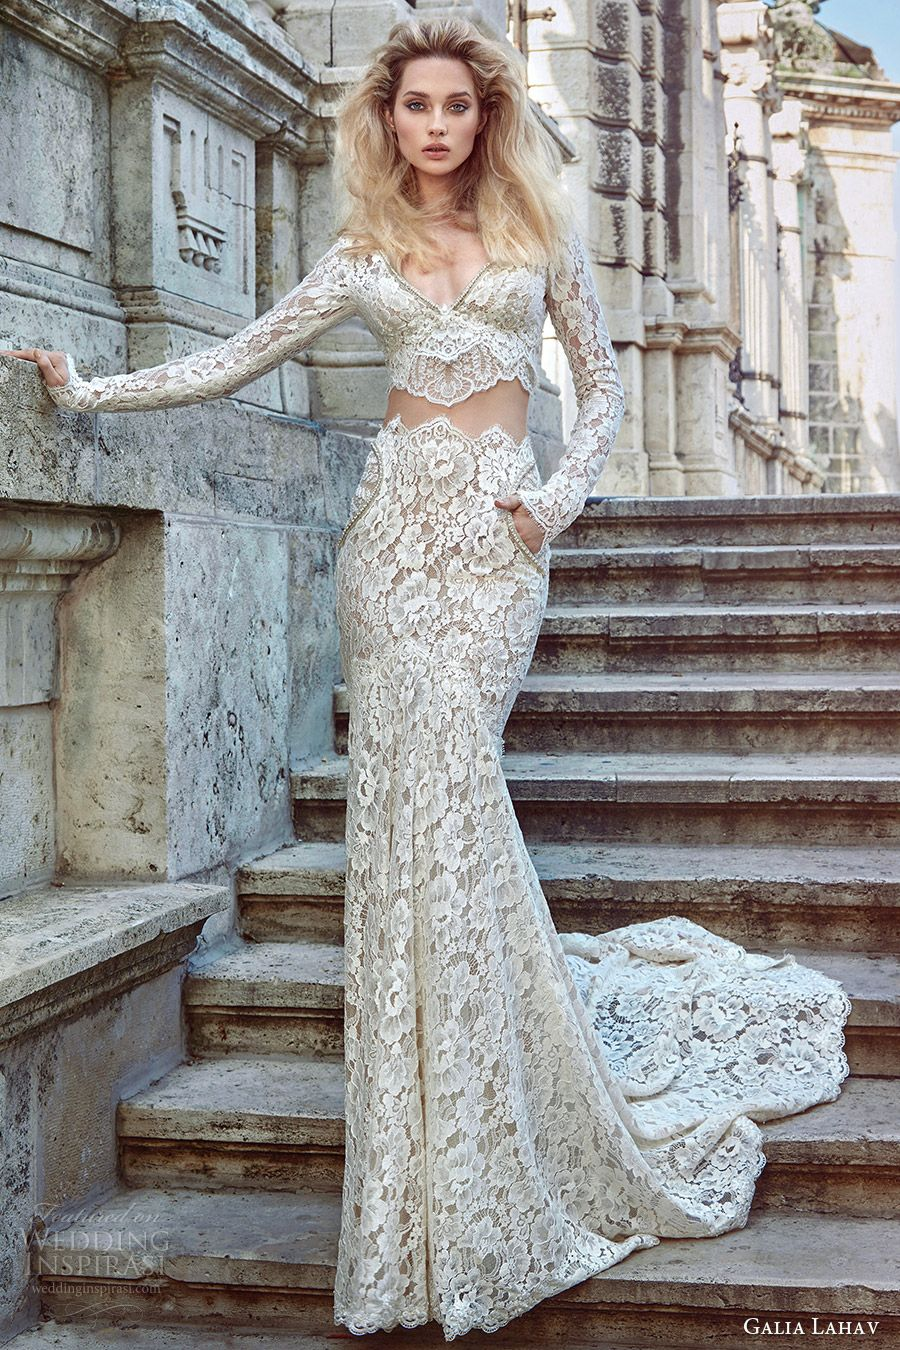 Galia lahav couture fall wedding dresses u ivory tower bridal